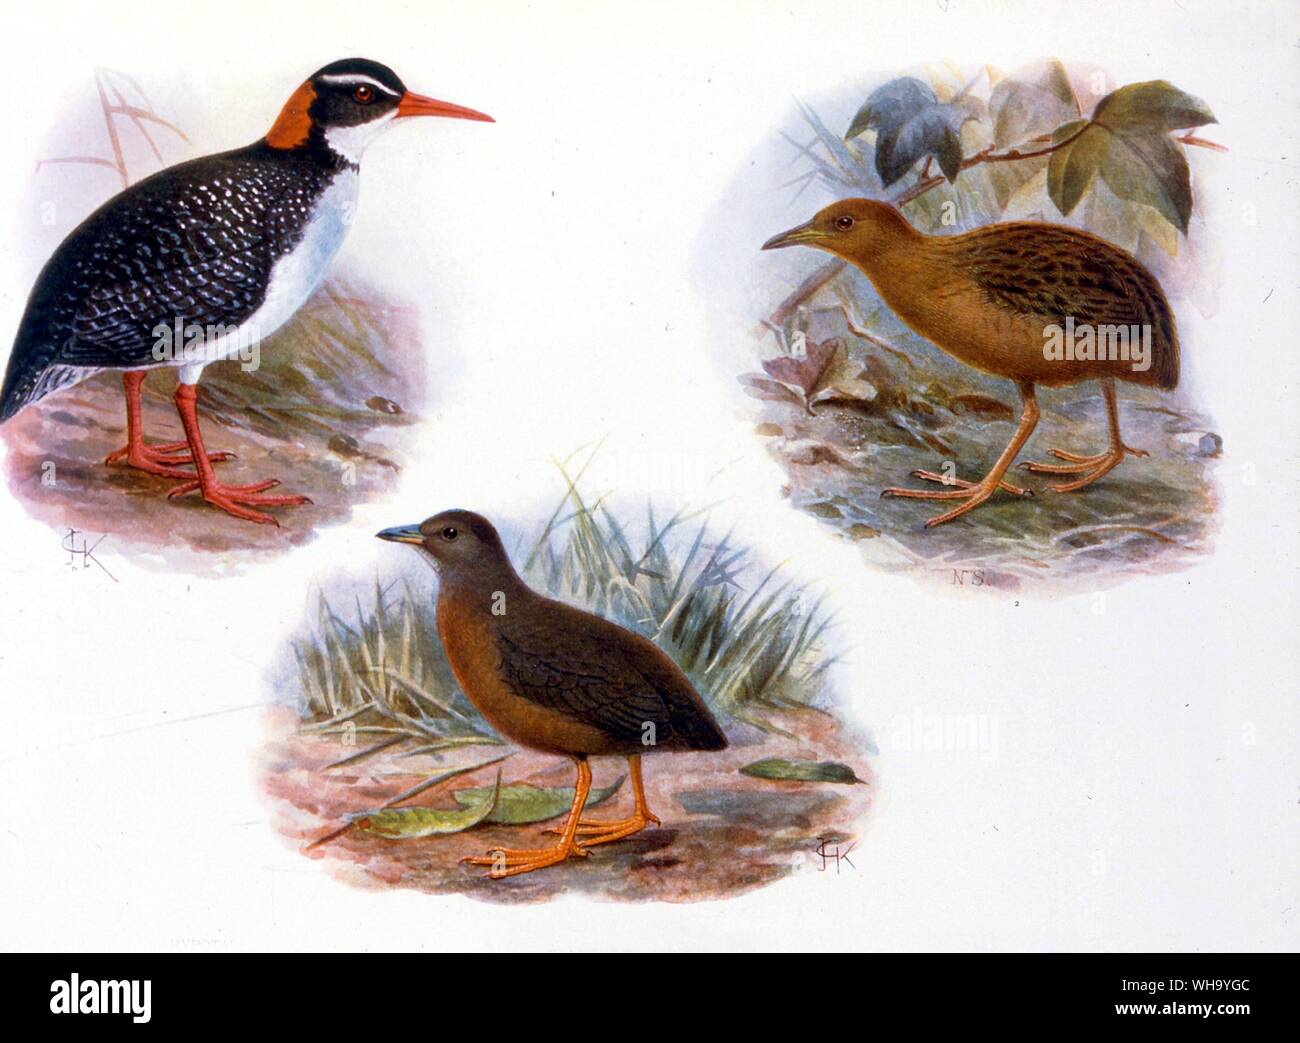 Extinct Rails. Top right: Hawaiian Rail (Porzana sandwichensis); middle: a dark form of P. sandwichensis or perhaps a separate species (P. millsi); top left: Tahitian Red-billed Rail (Rallus pacificus). Chromolithographs from W. Rothschild's Extinct Birds (London, 1907), Pl.26. Courtesy of The Hon. Miriam Rothschild. - Hawaiian Rail is 14cm (5.5in) in length Stock Photo